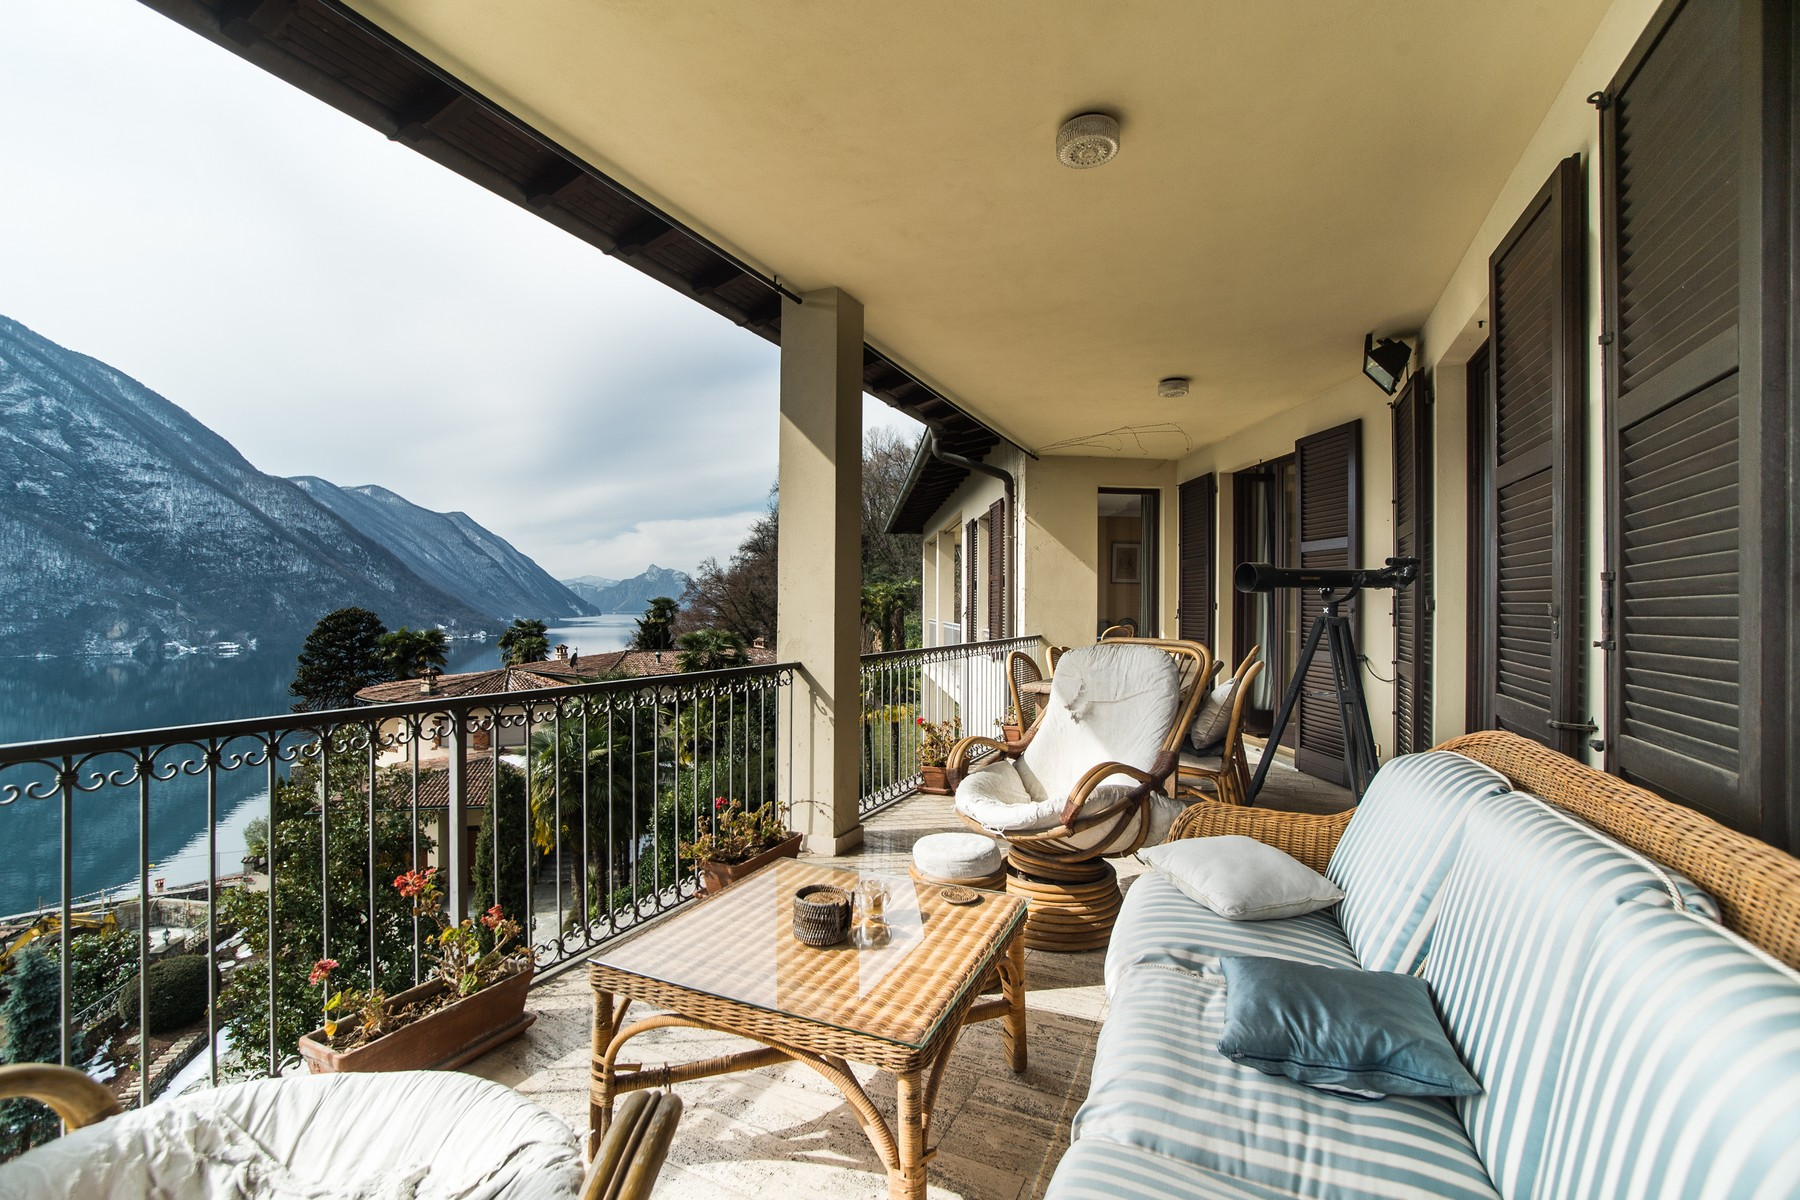 Additional photo for property listing at Prestigious villa on Lake Lugano Via G. Finali Valsolda, Como 22010 Italia